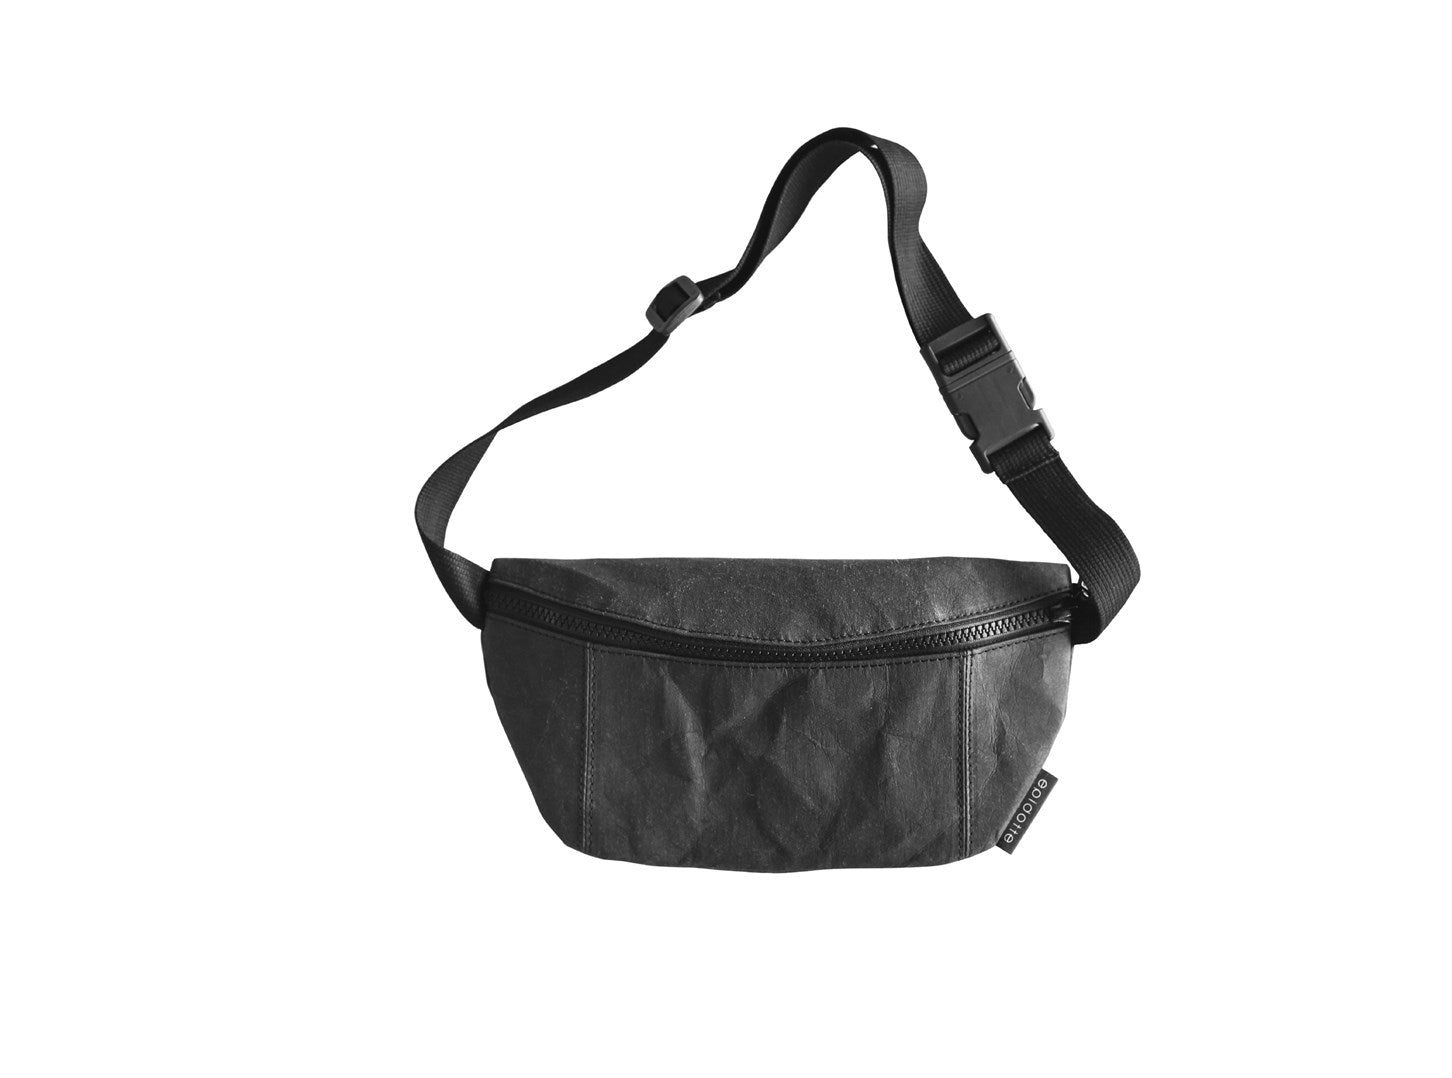 Picture of Epidotte FANNY PACK BLACK BEL ÇANTASI